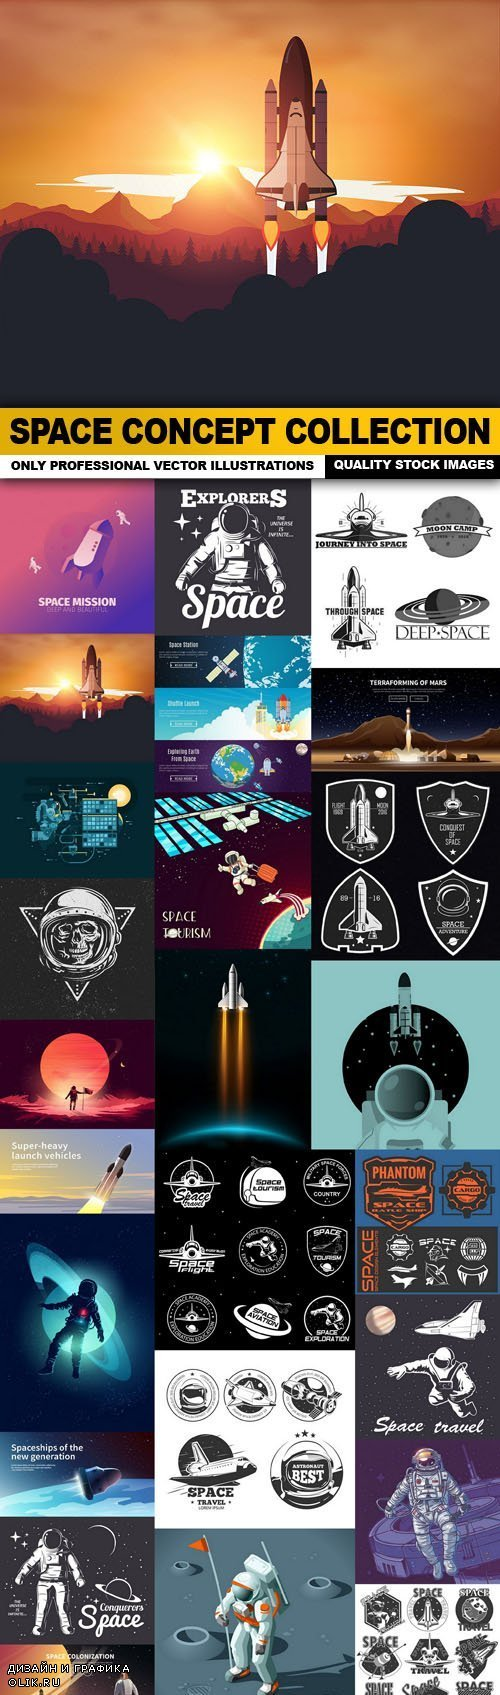 Space Concept Collection - 25 Vector